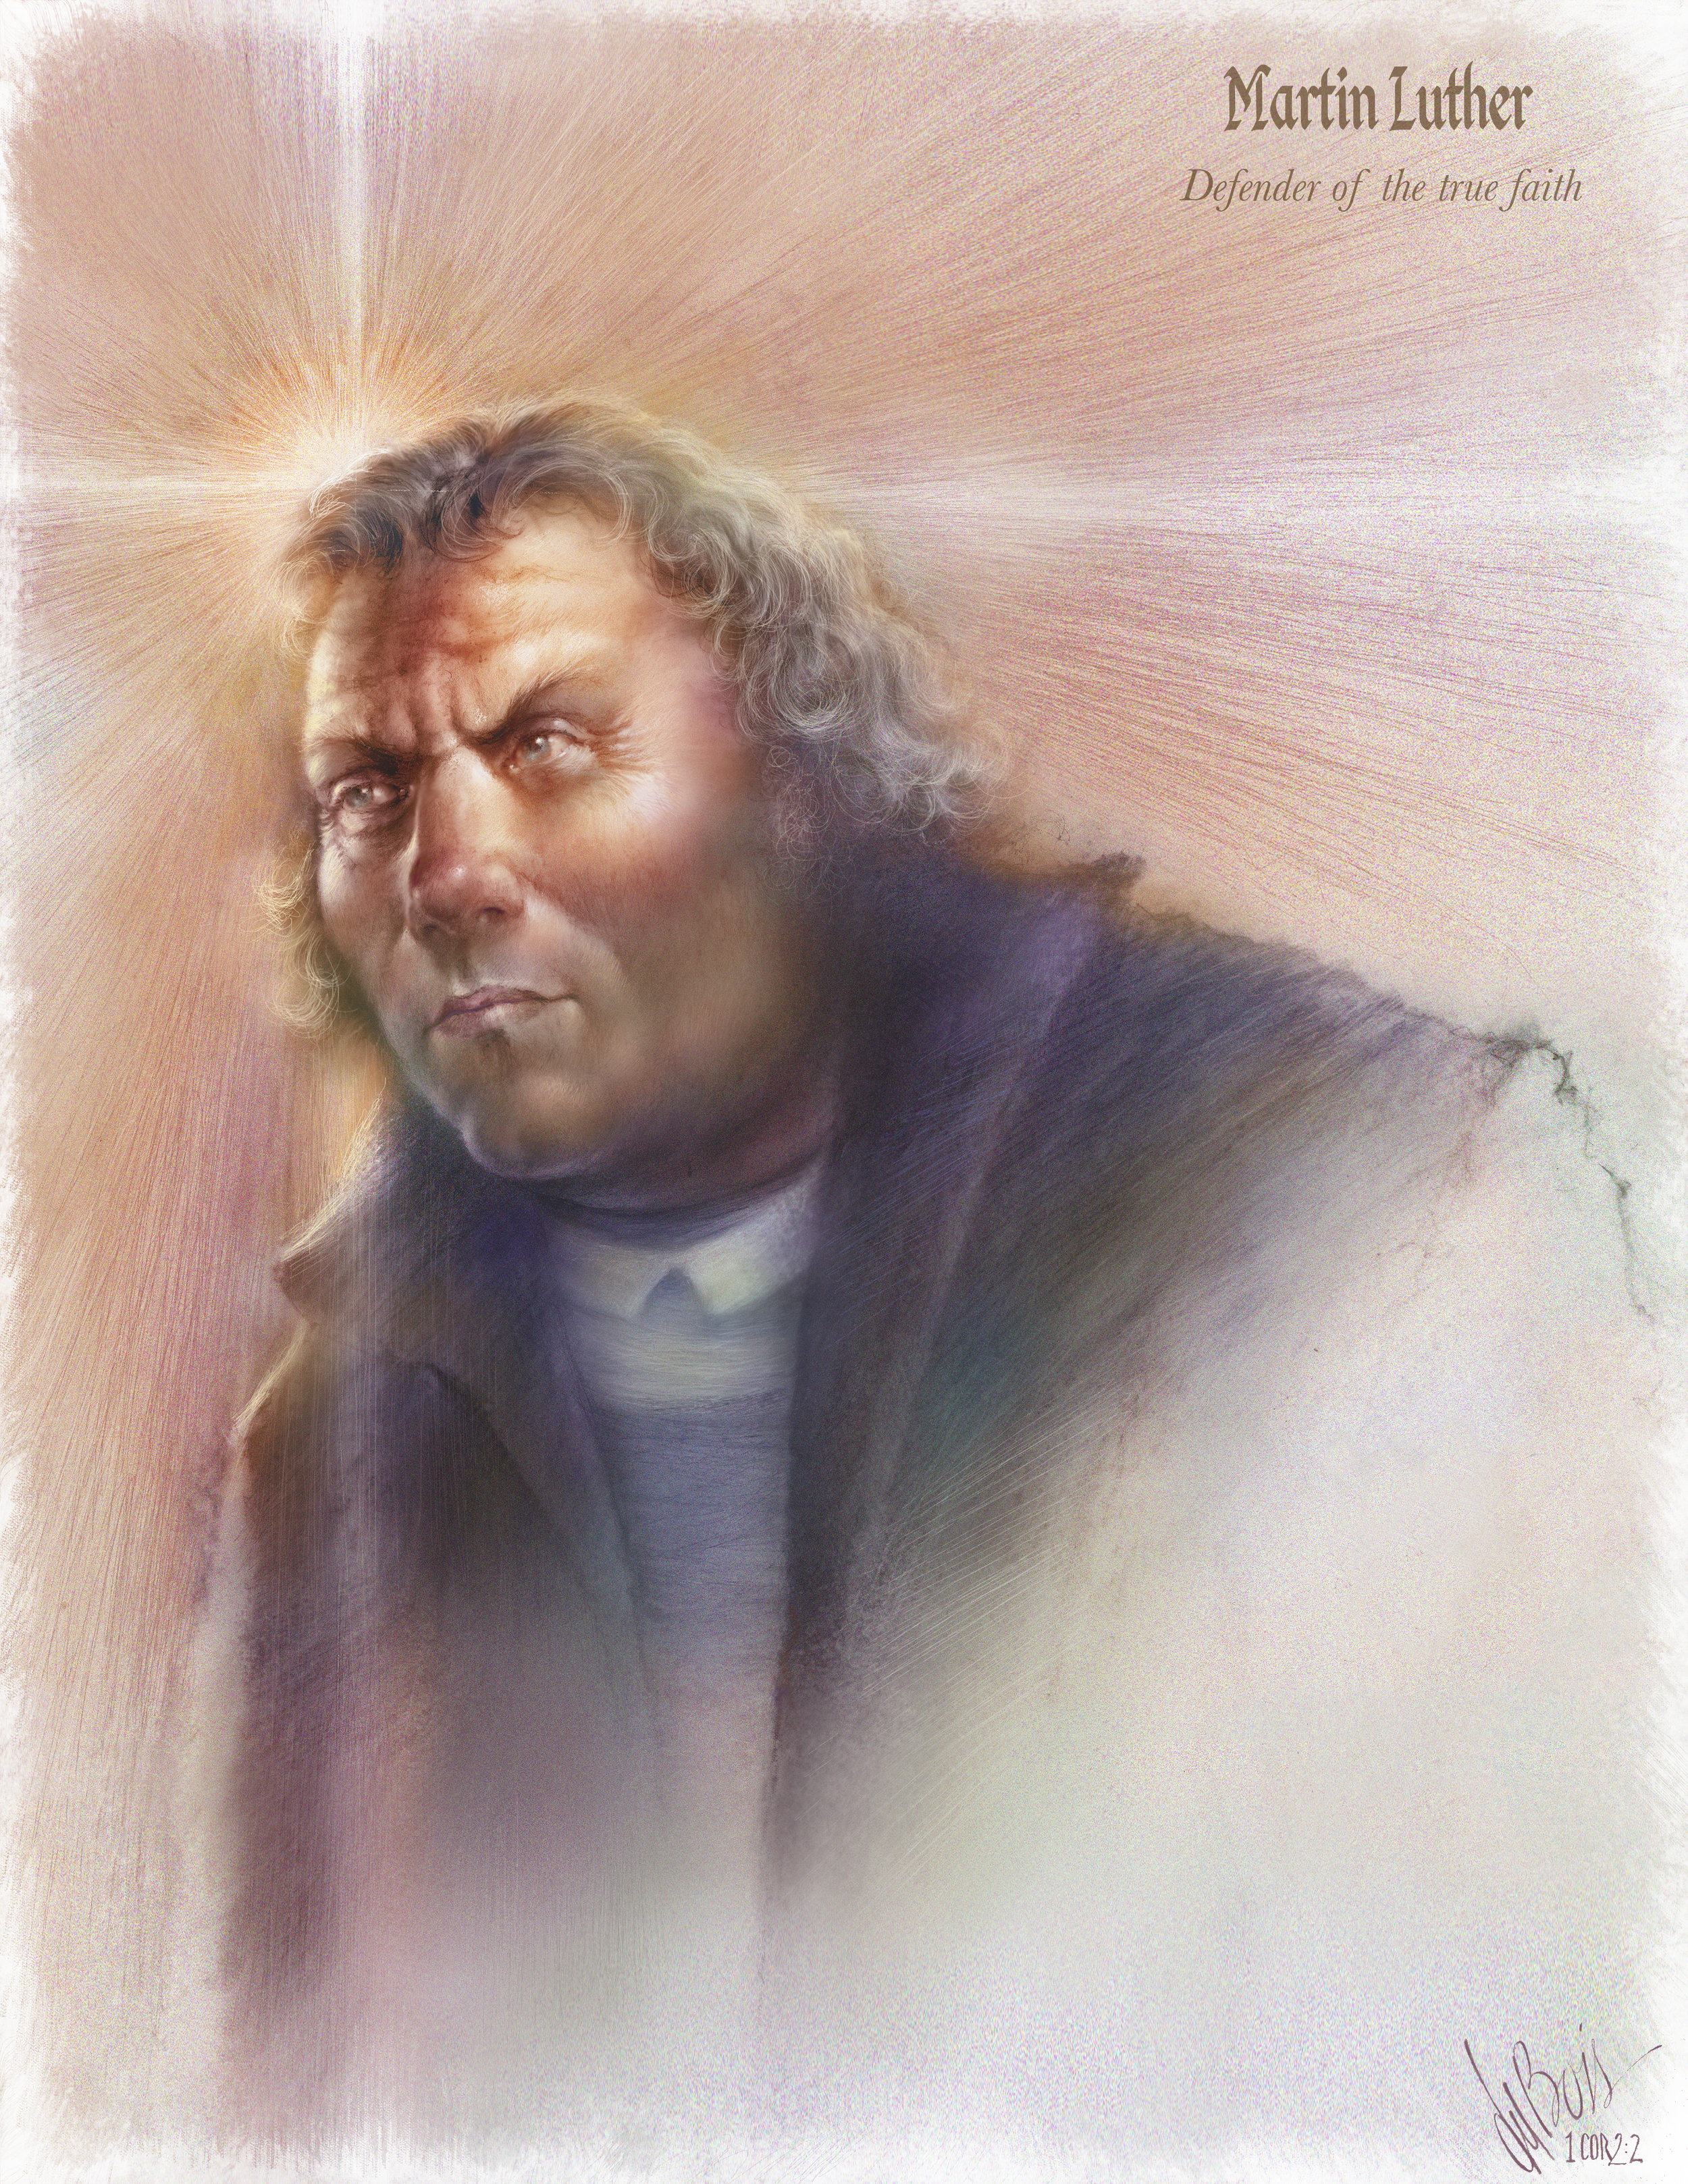 Luther-Defender of the true Faith copy.jpg